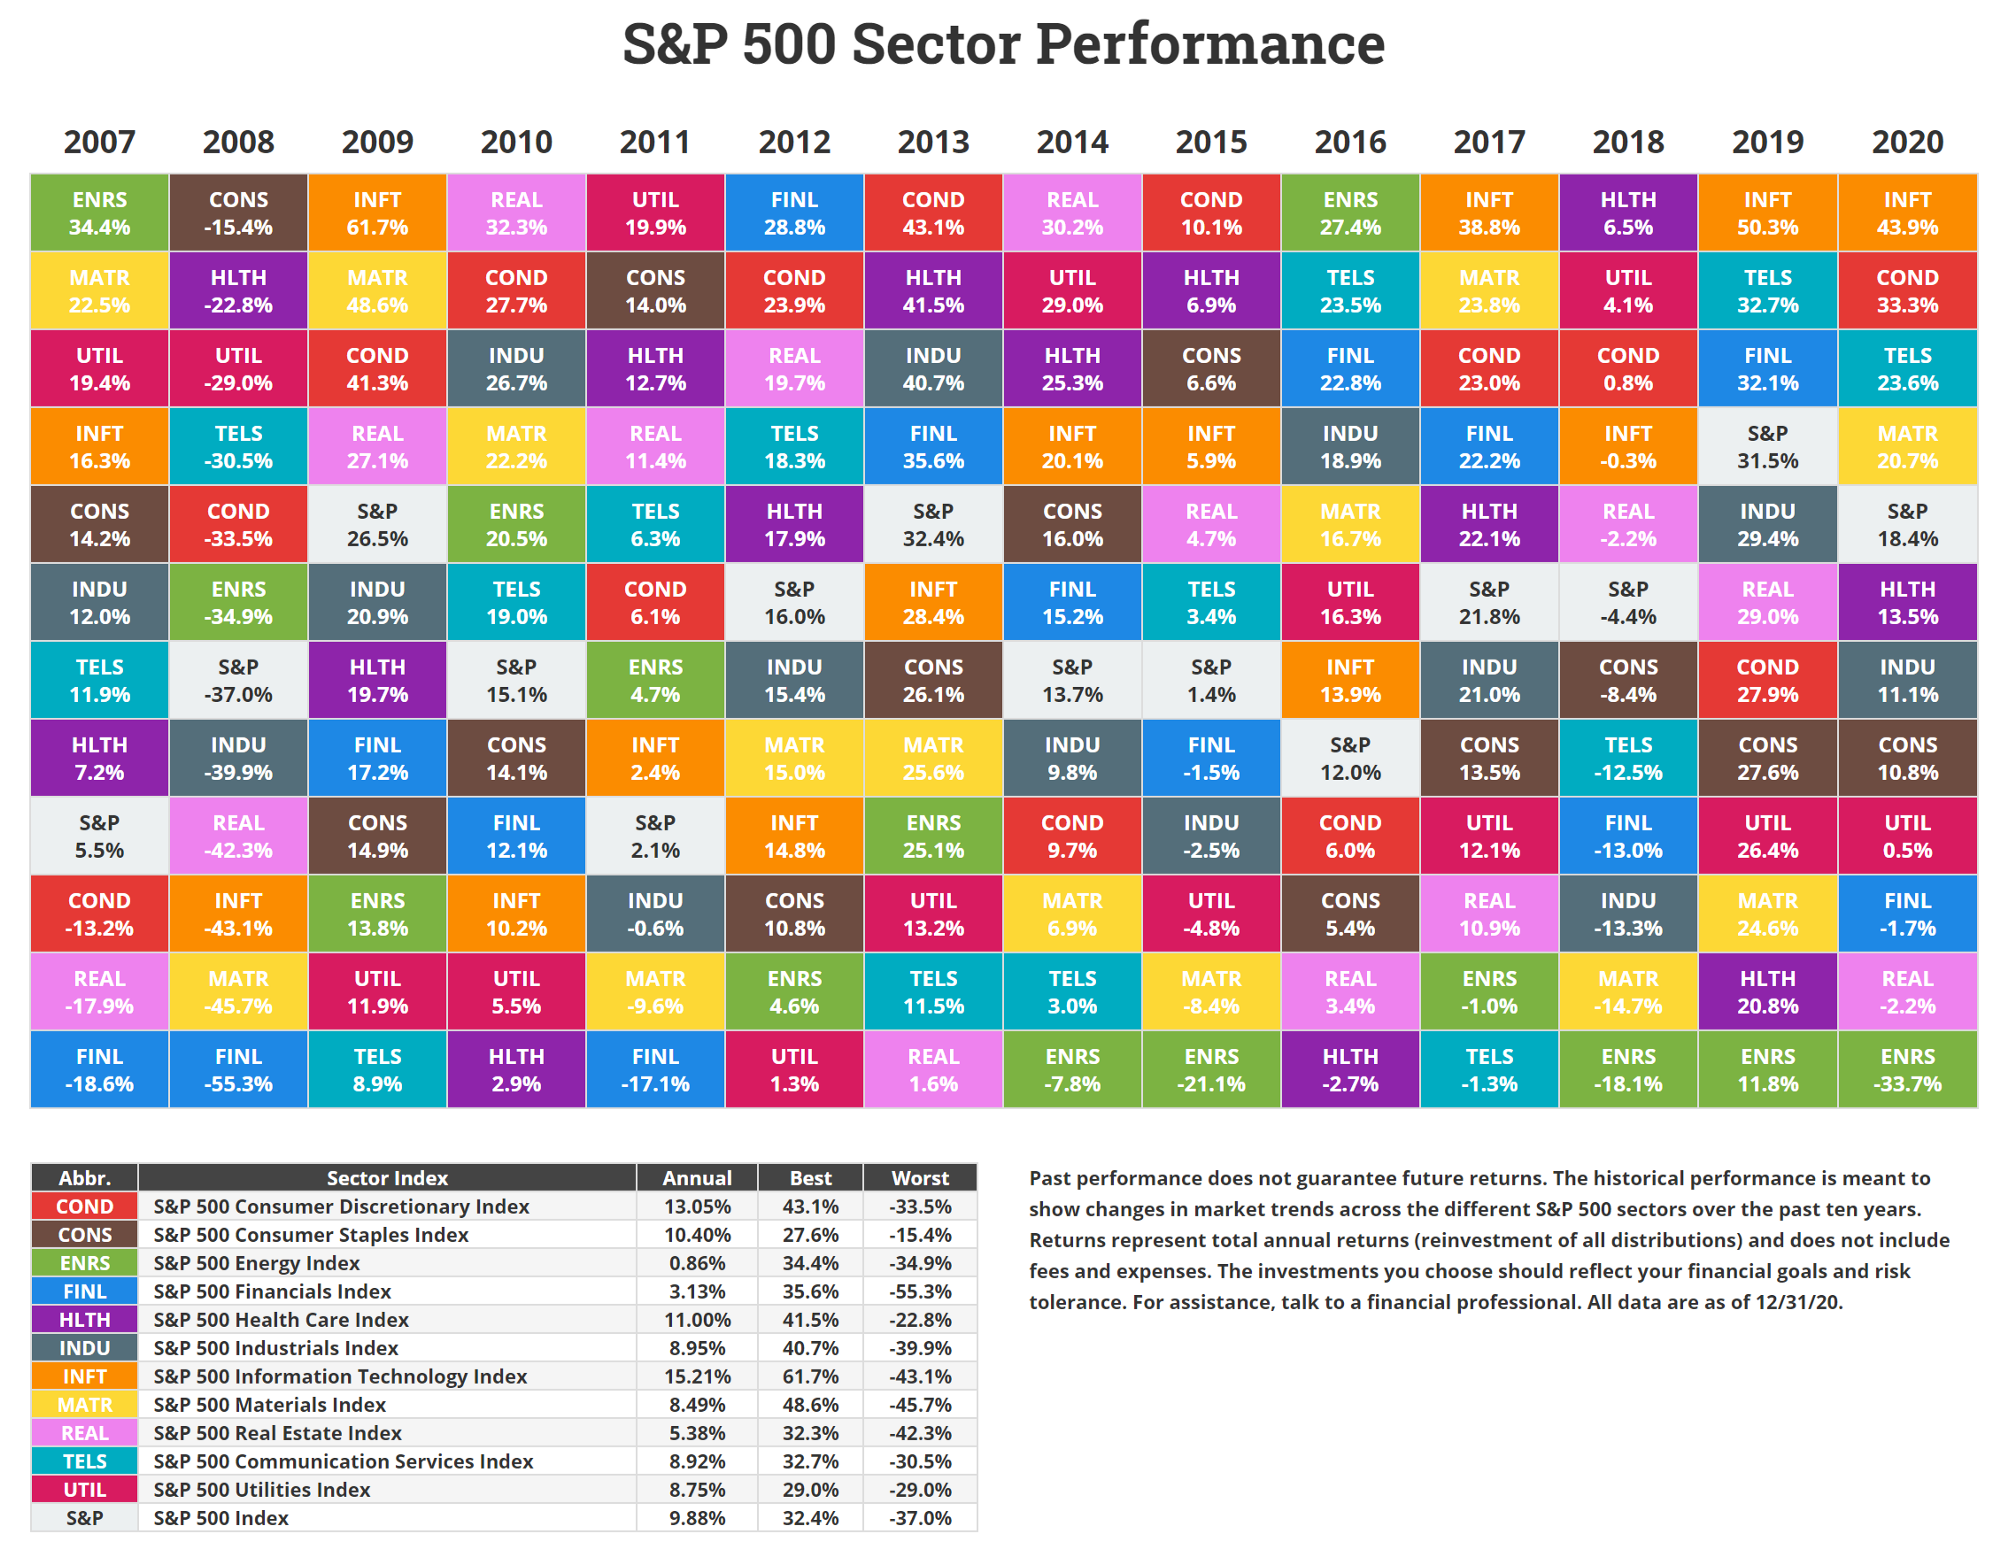 Multicolor table of S&P 500 Performance by sector from 2007 to 2020 (from Novel Investor where it's even interactive).